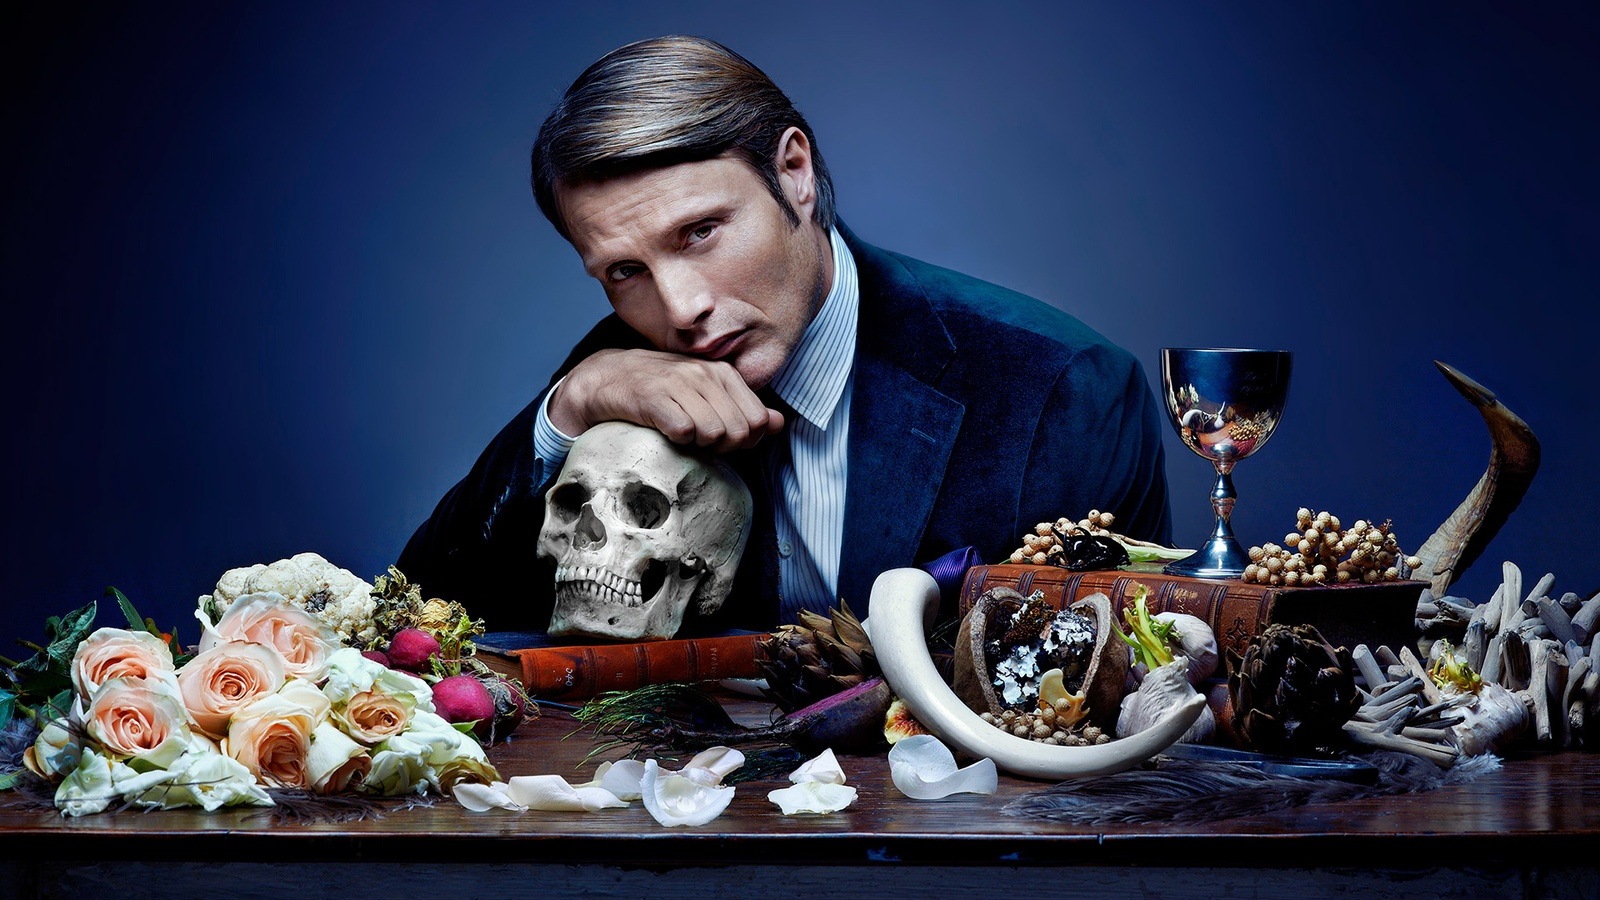 Ганнибал/Hannibal background